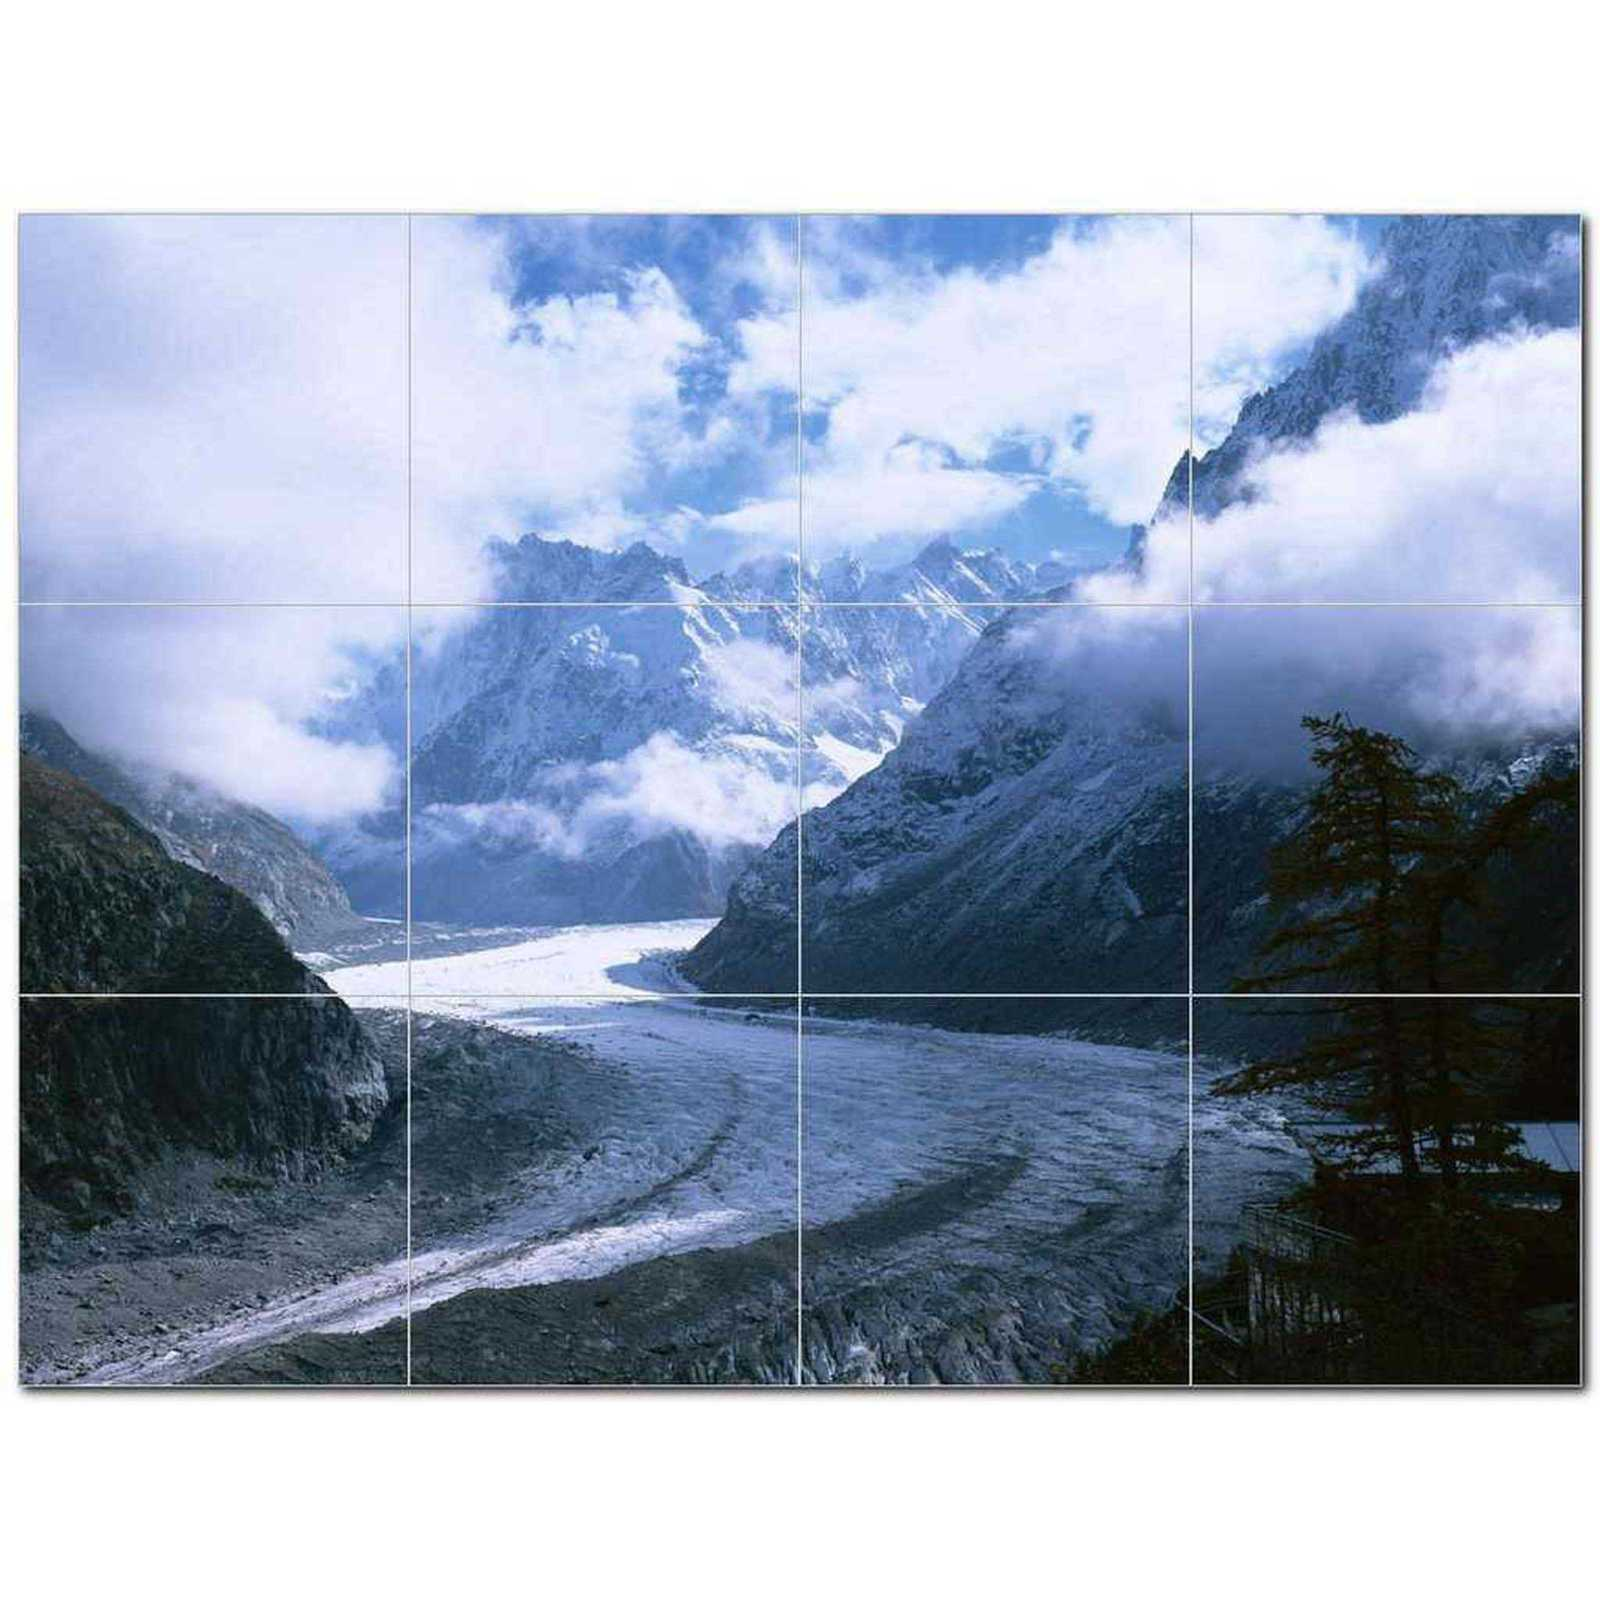 Primary image for Winter Photo Ceramic Tile Mural Kitchen Backsplash Bathroom Shower BAZ406385